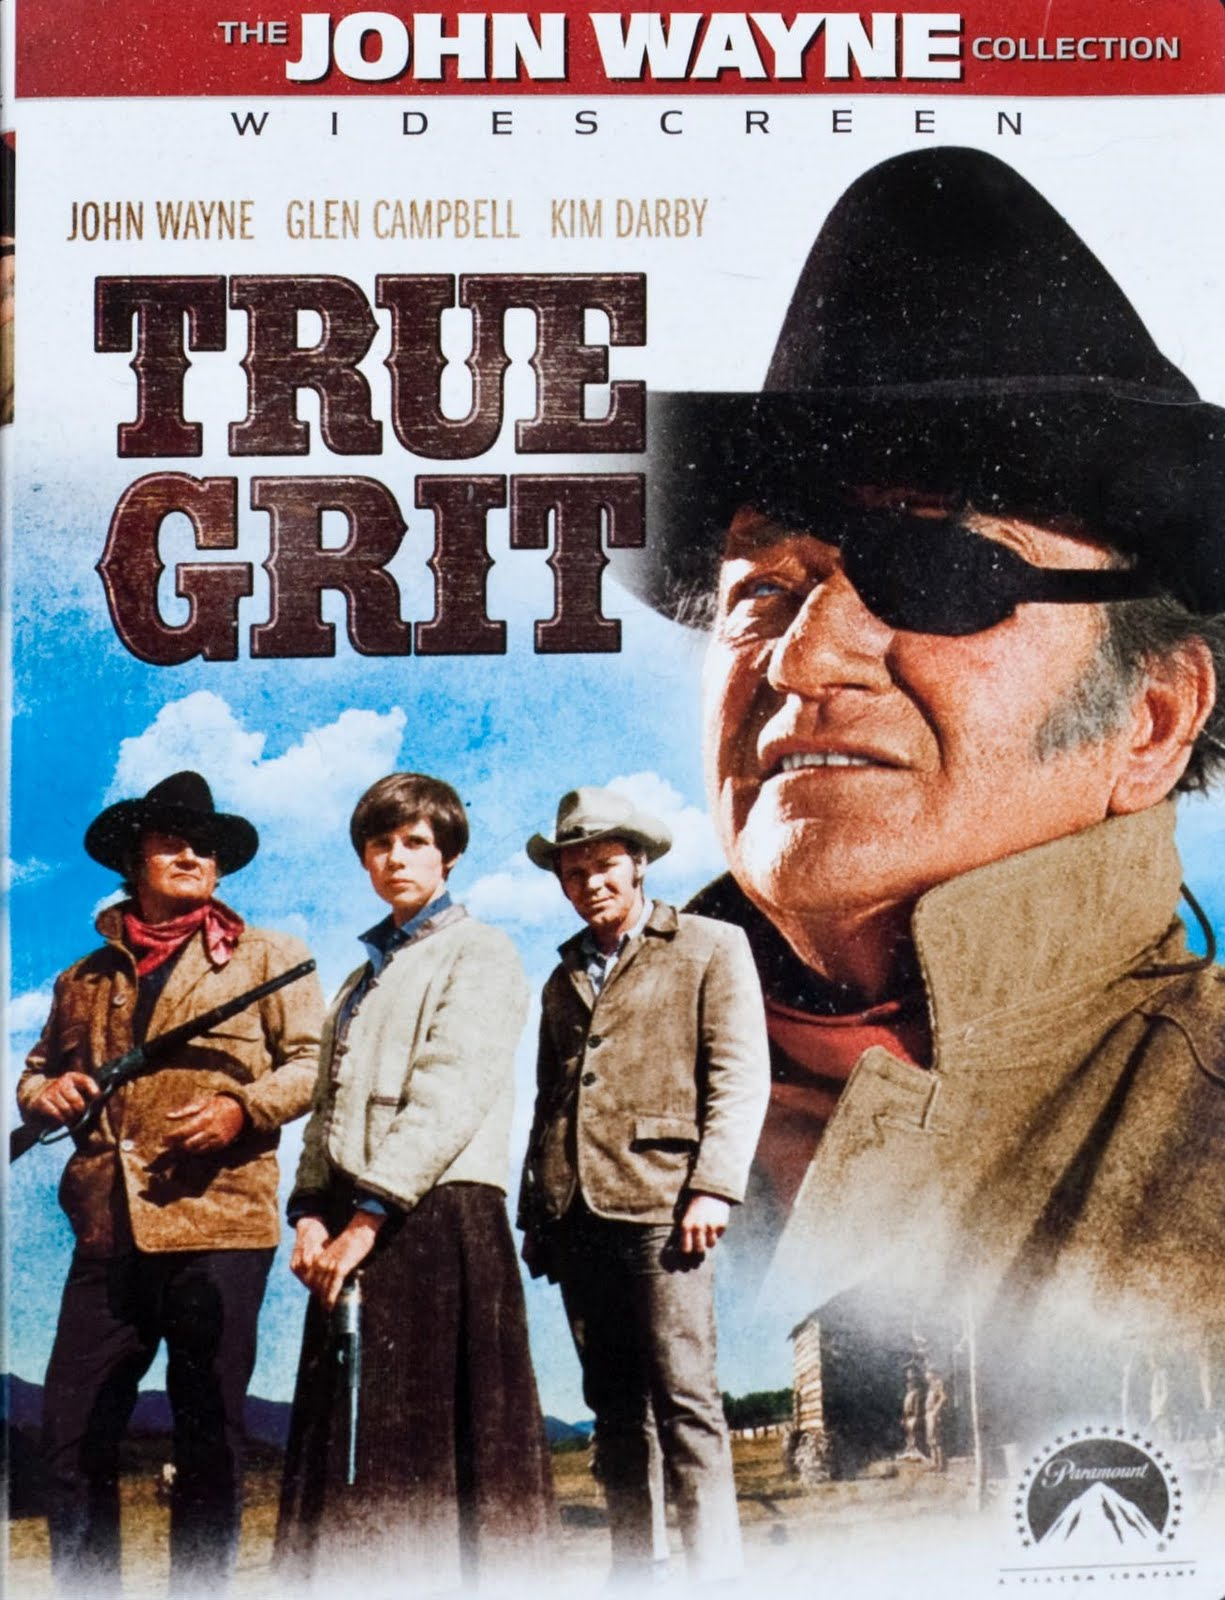 who has true grit True grit among american sports wear brands, true grit clothing is a bit of an anomaly founded in 1990, the goal of true grit has been to bring together european style quality of materials with the look and feel of outdoorsy americana.